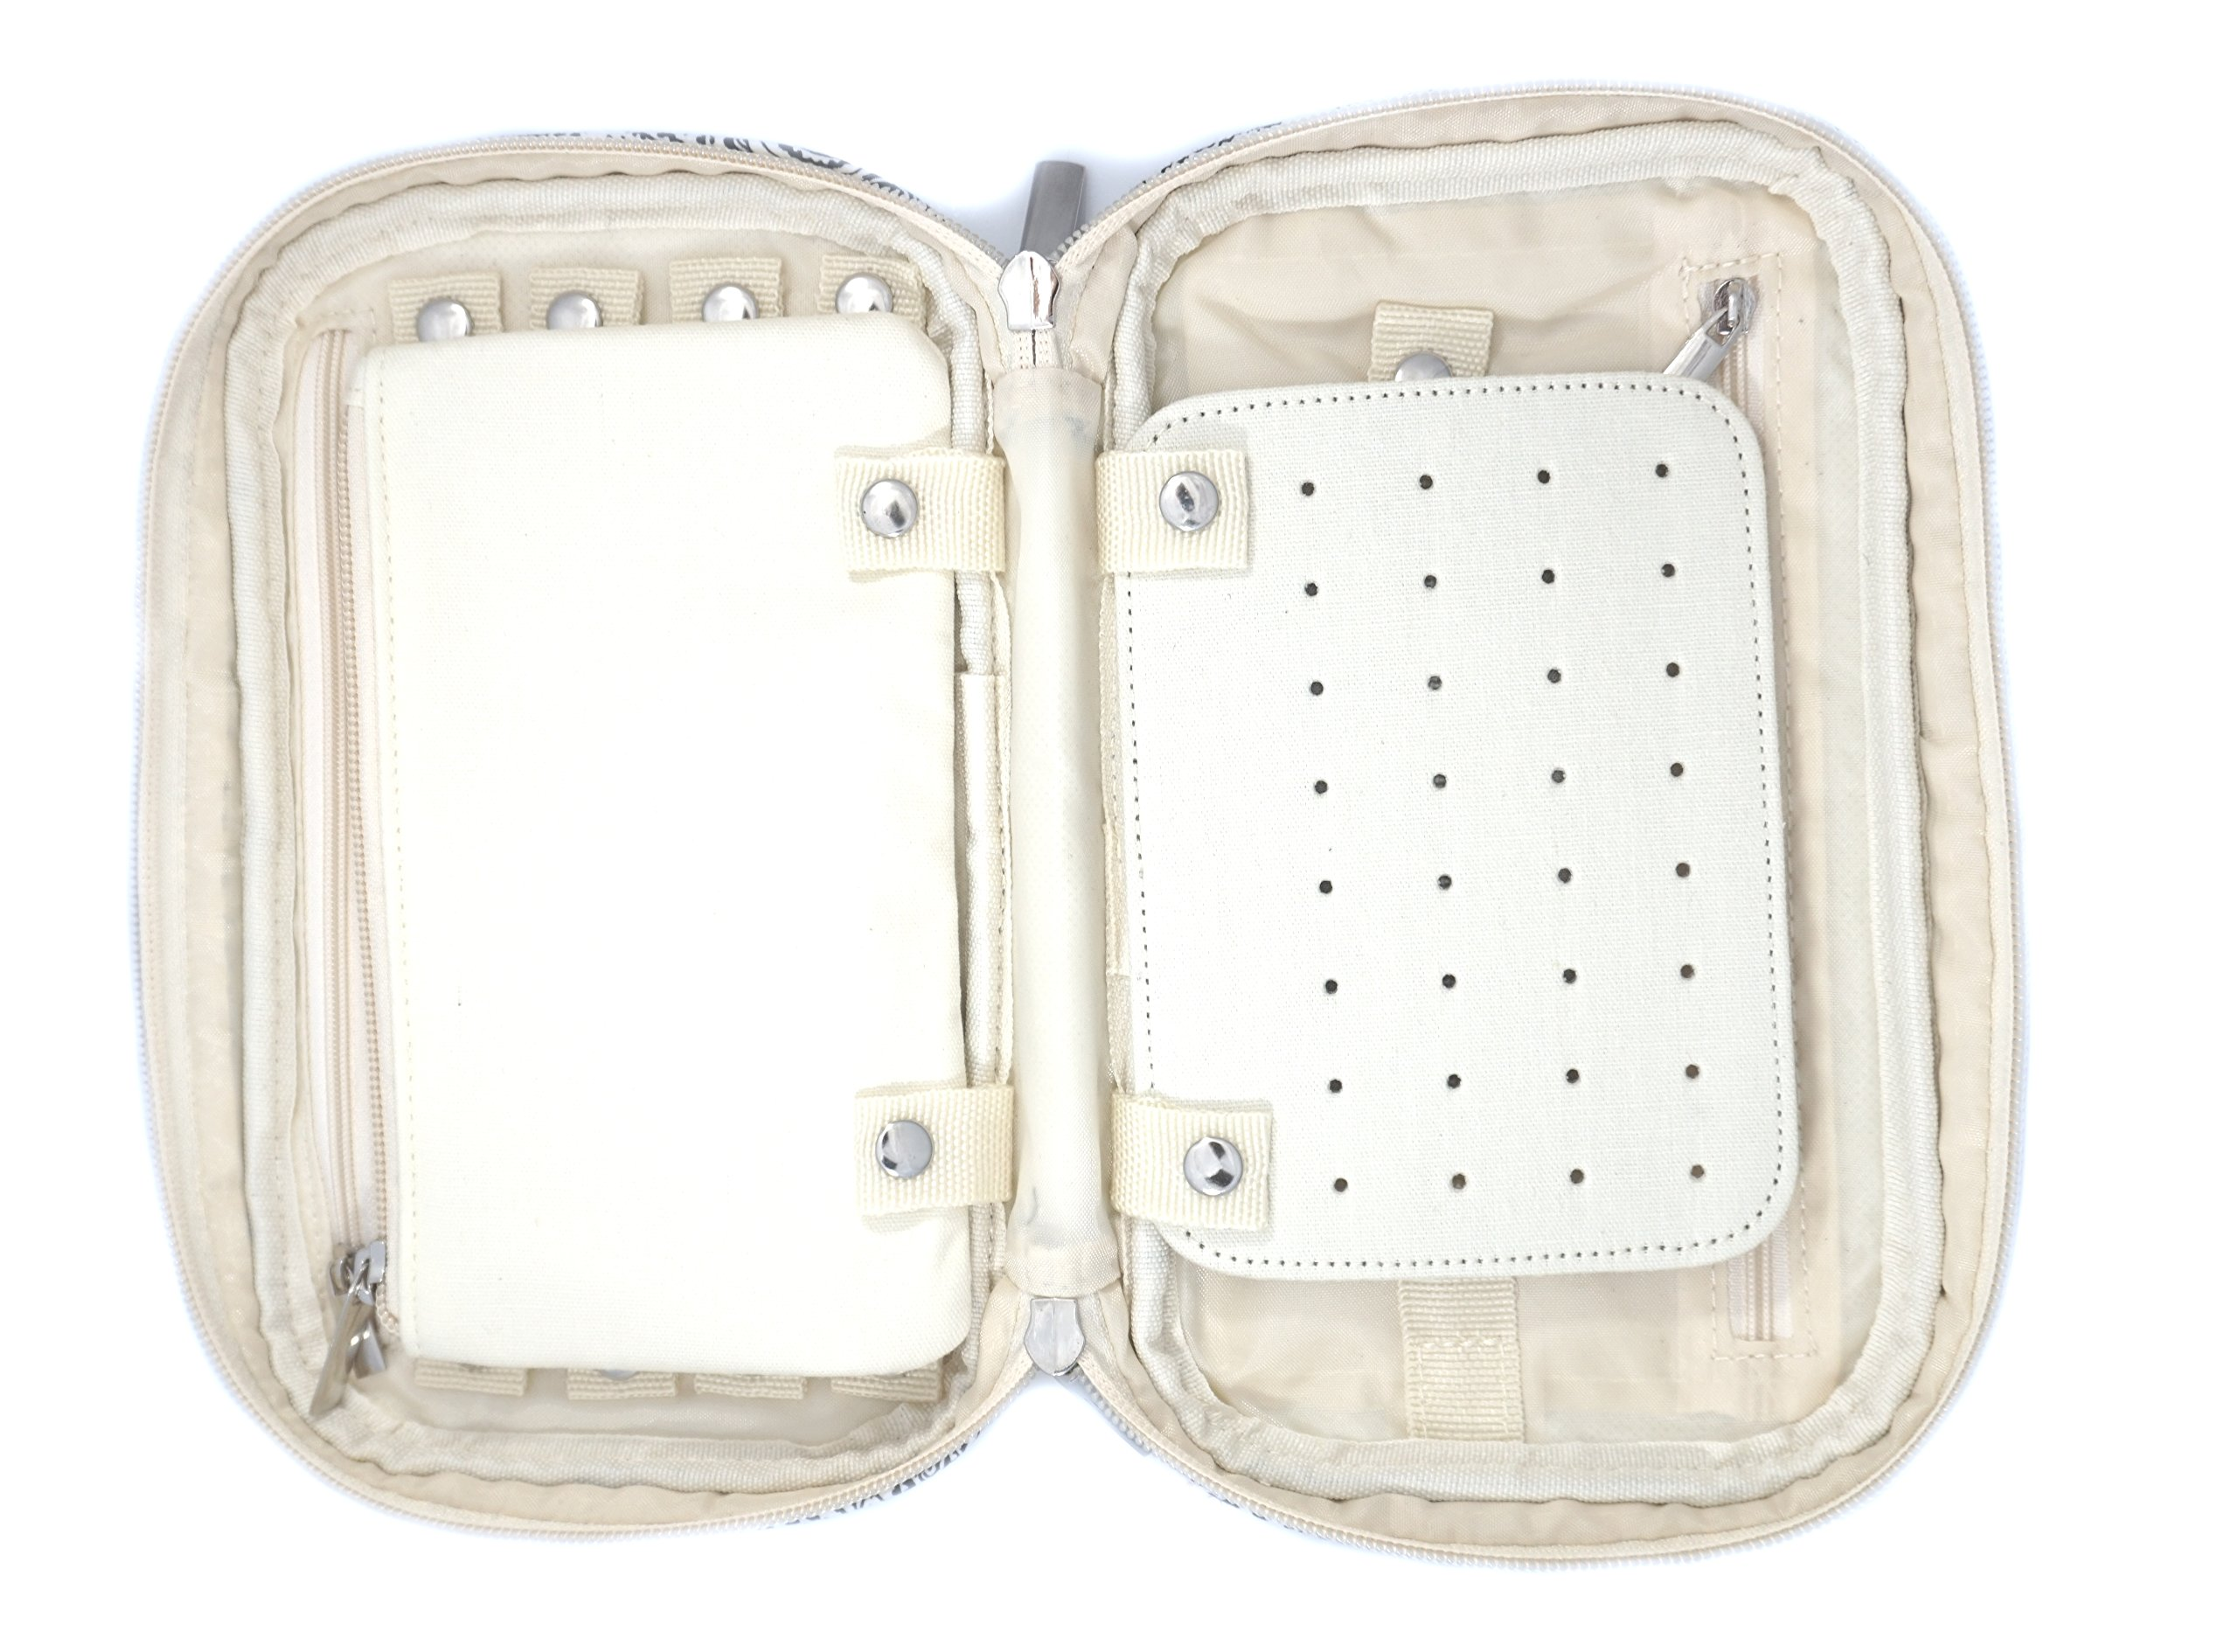 Jewelry & Accessories Travel Organizer Bag Case (Black) by Simple Accessories (Image #8)